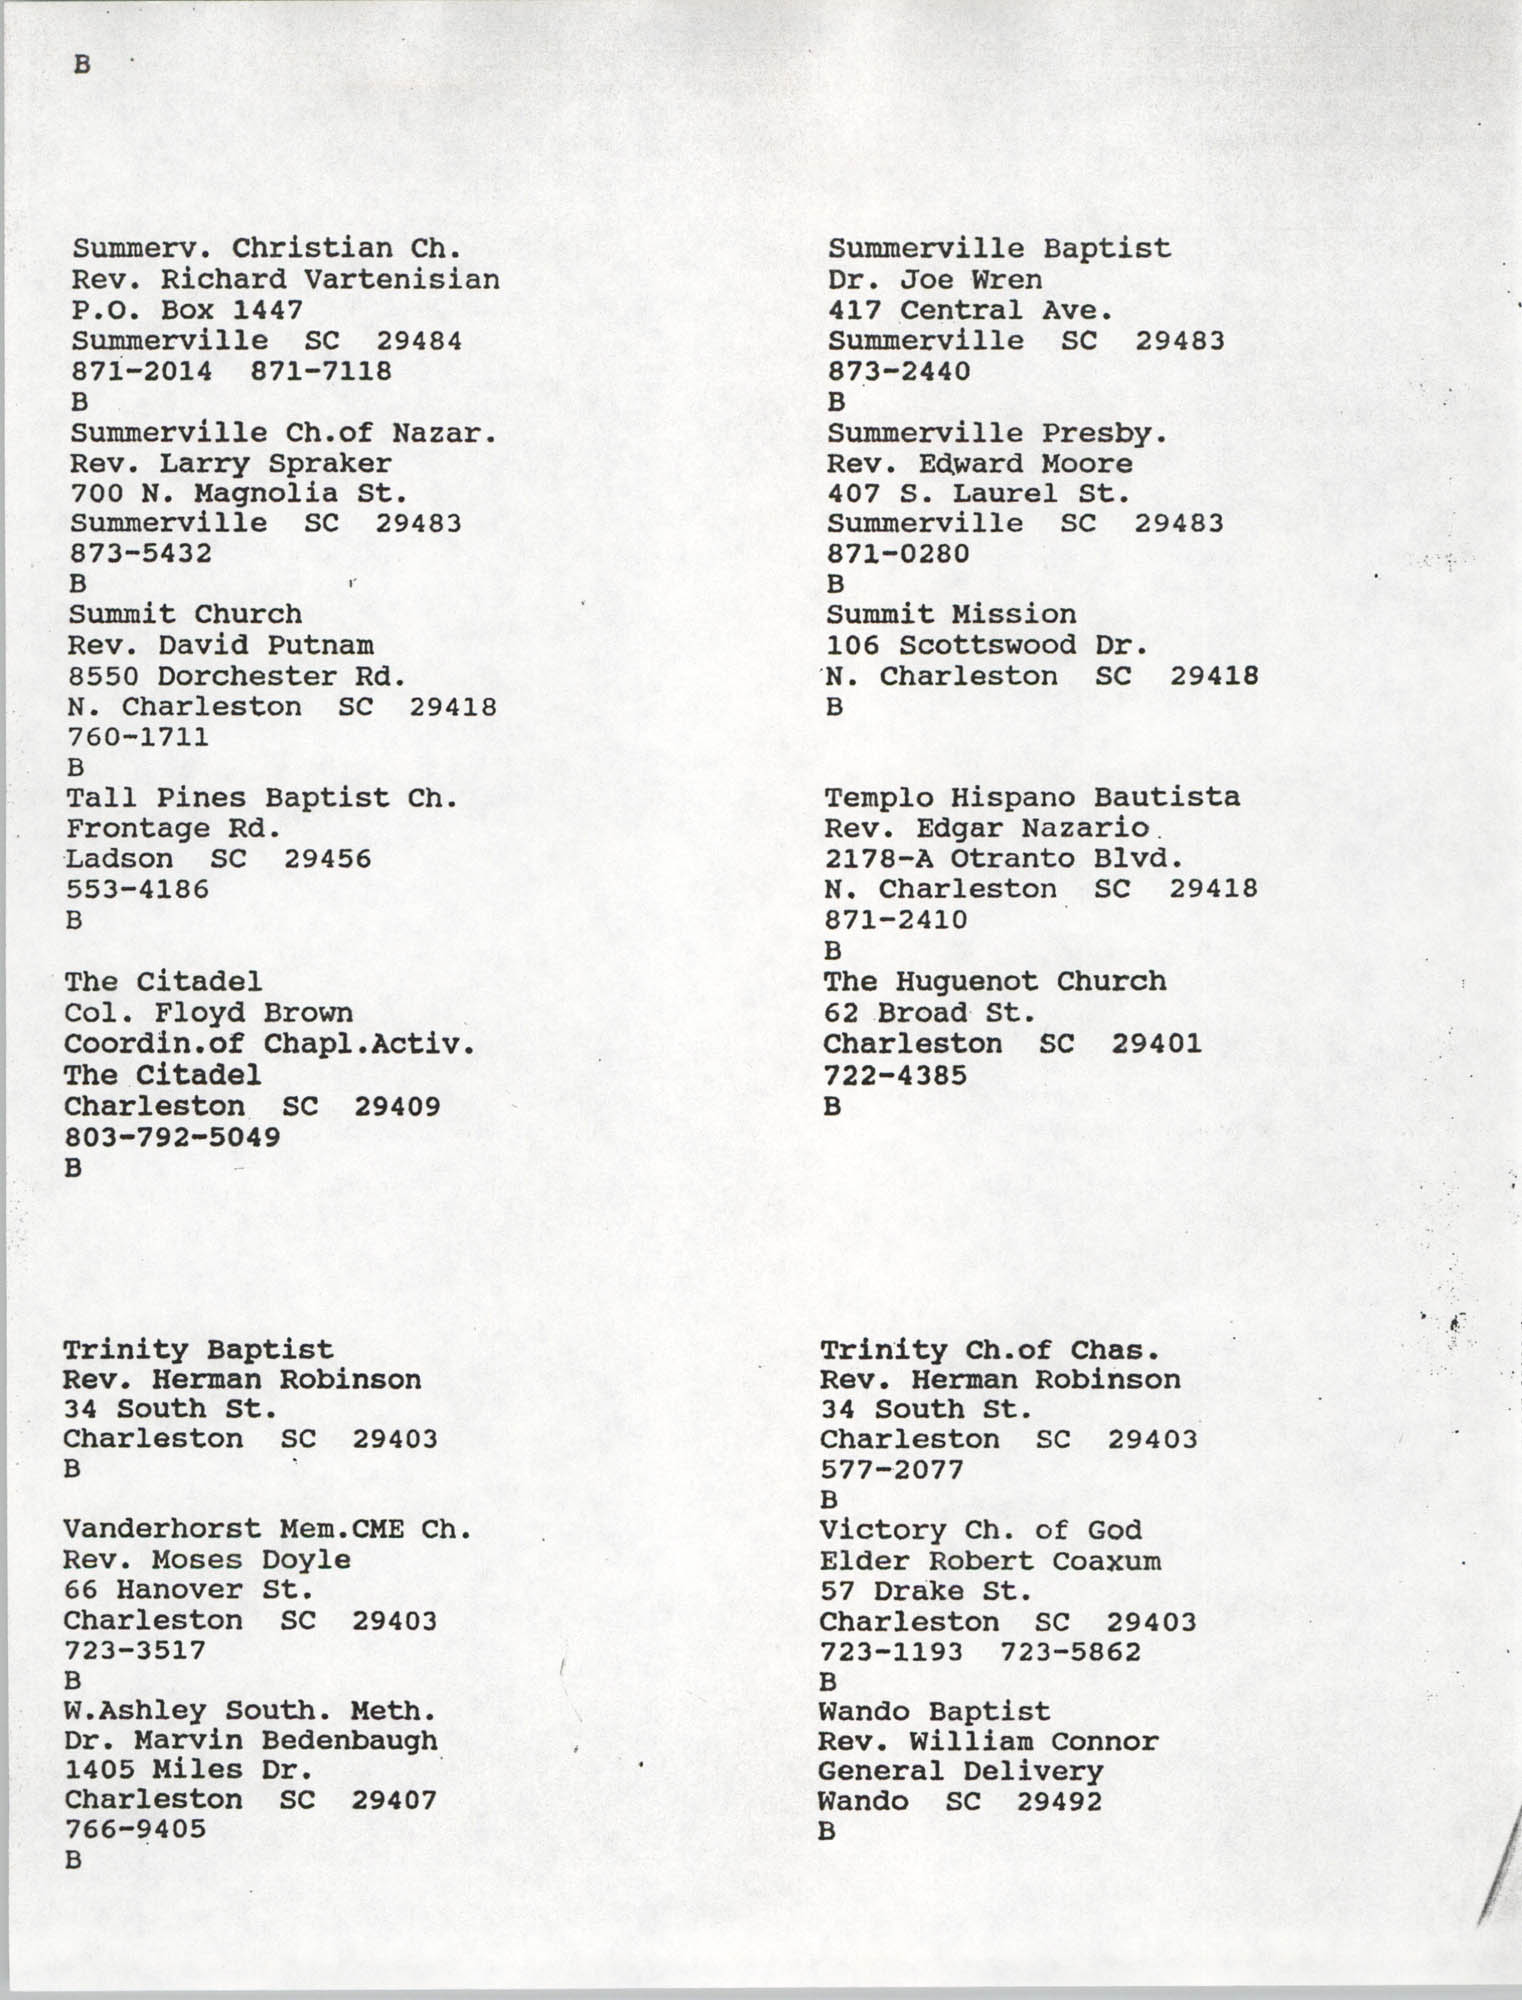 Church Contact List, Charleston Chapter of the NAACP, Page 14